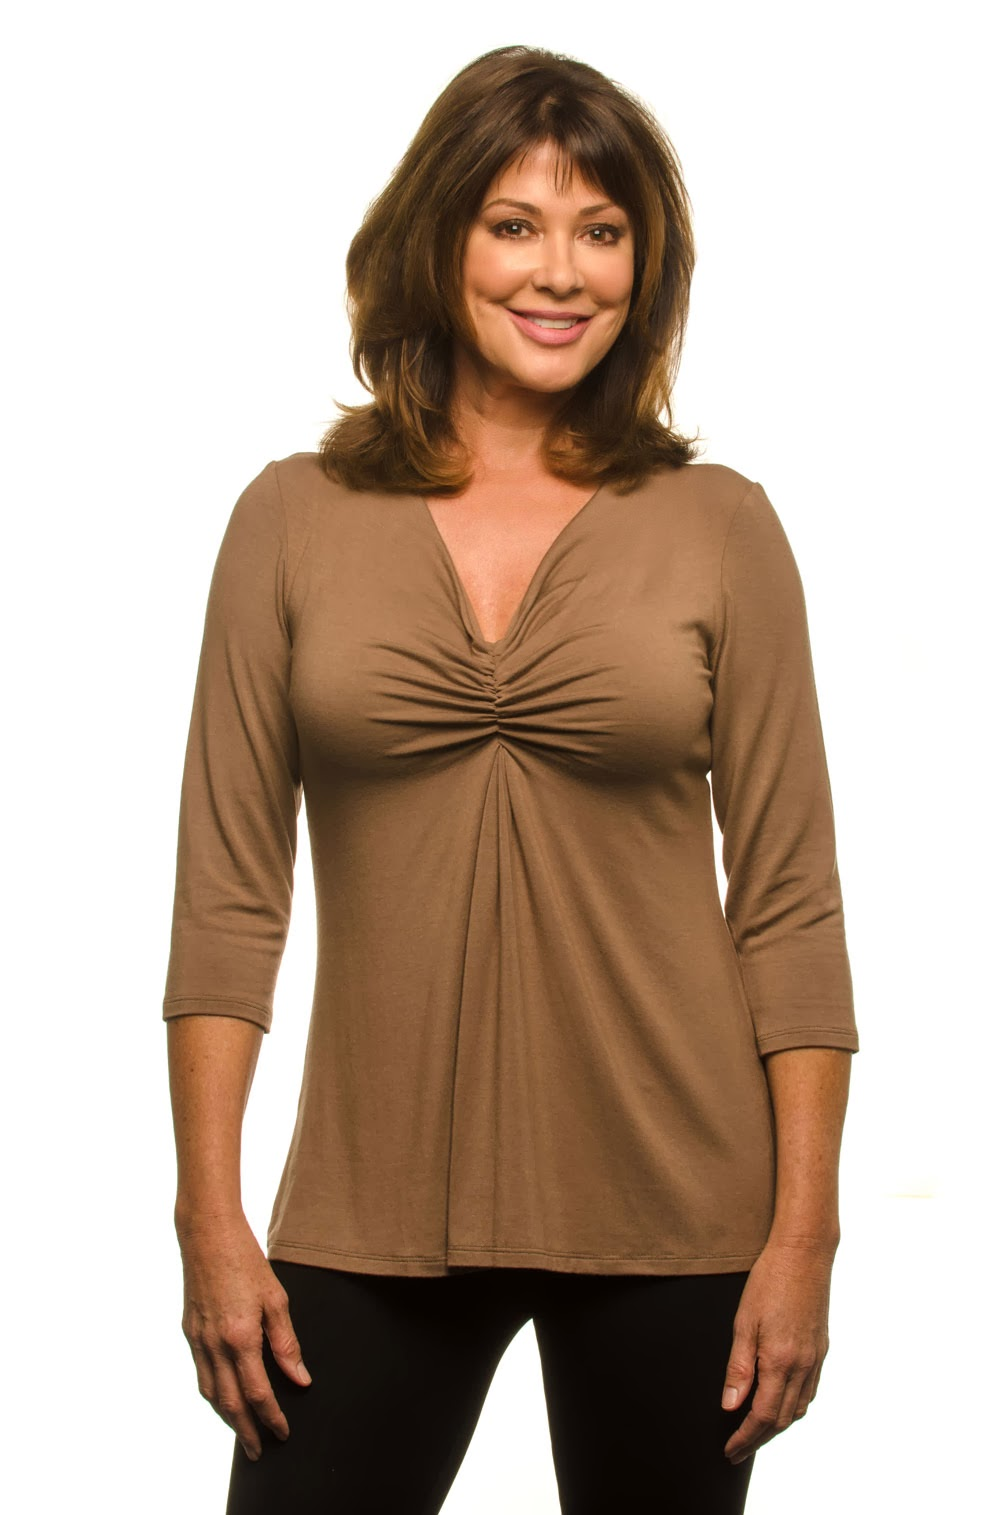 flattering tops for women over 40